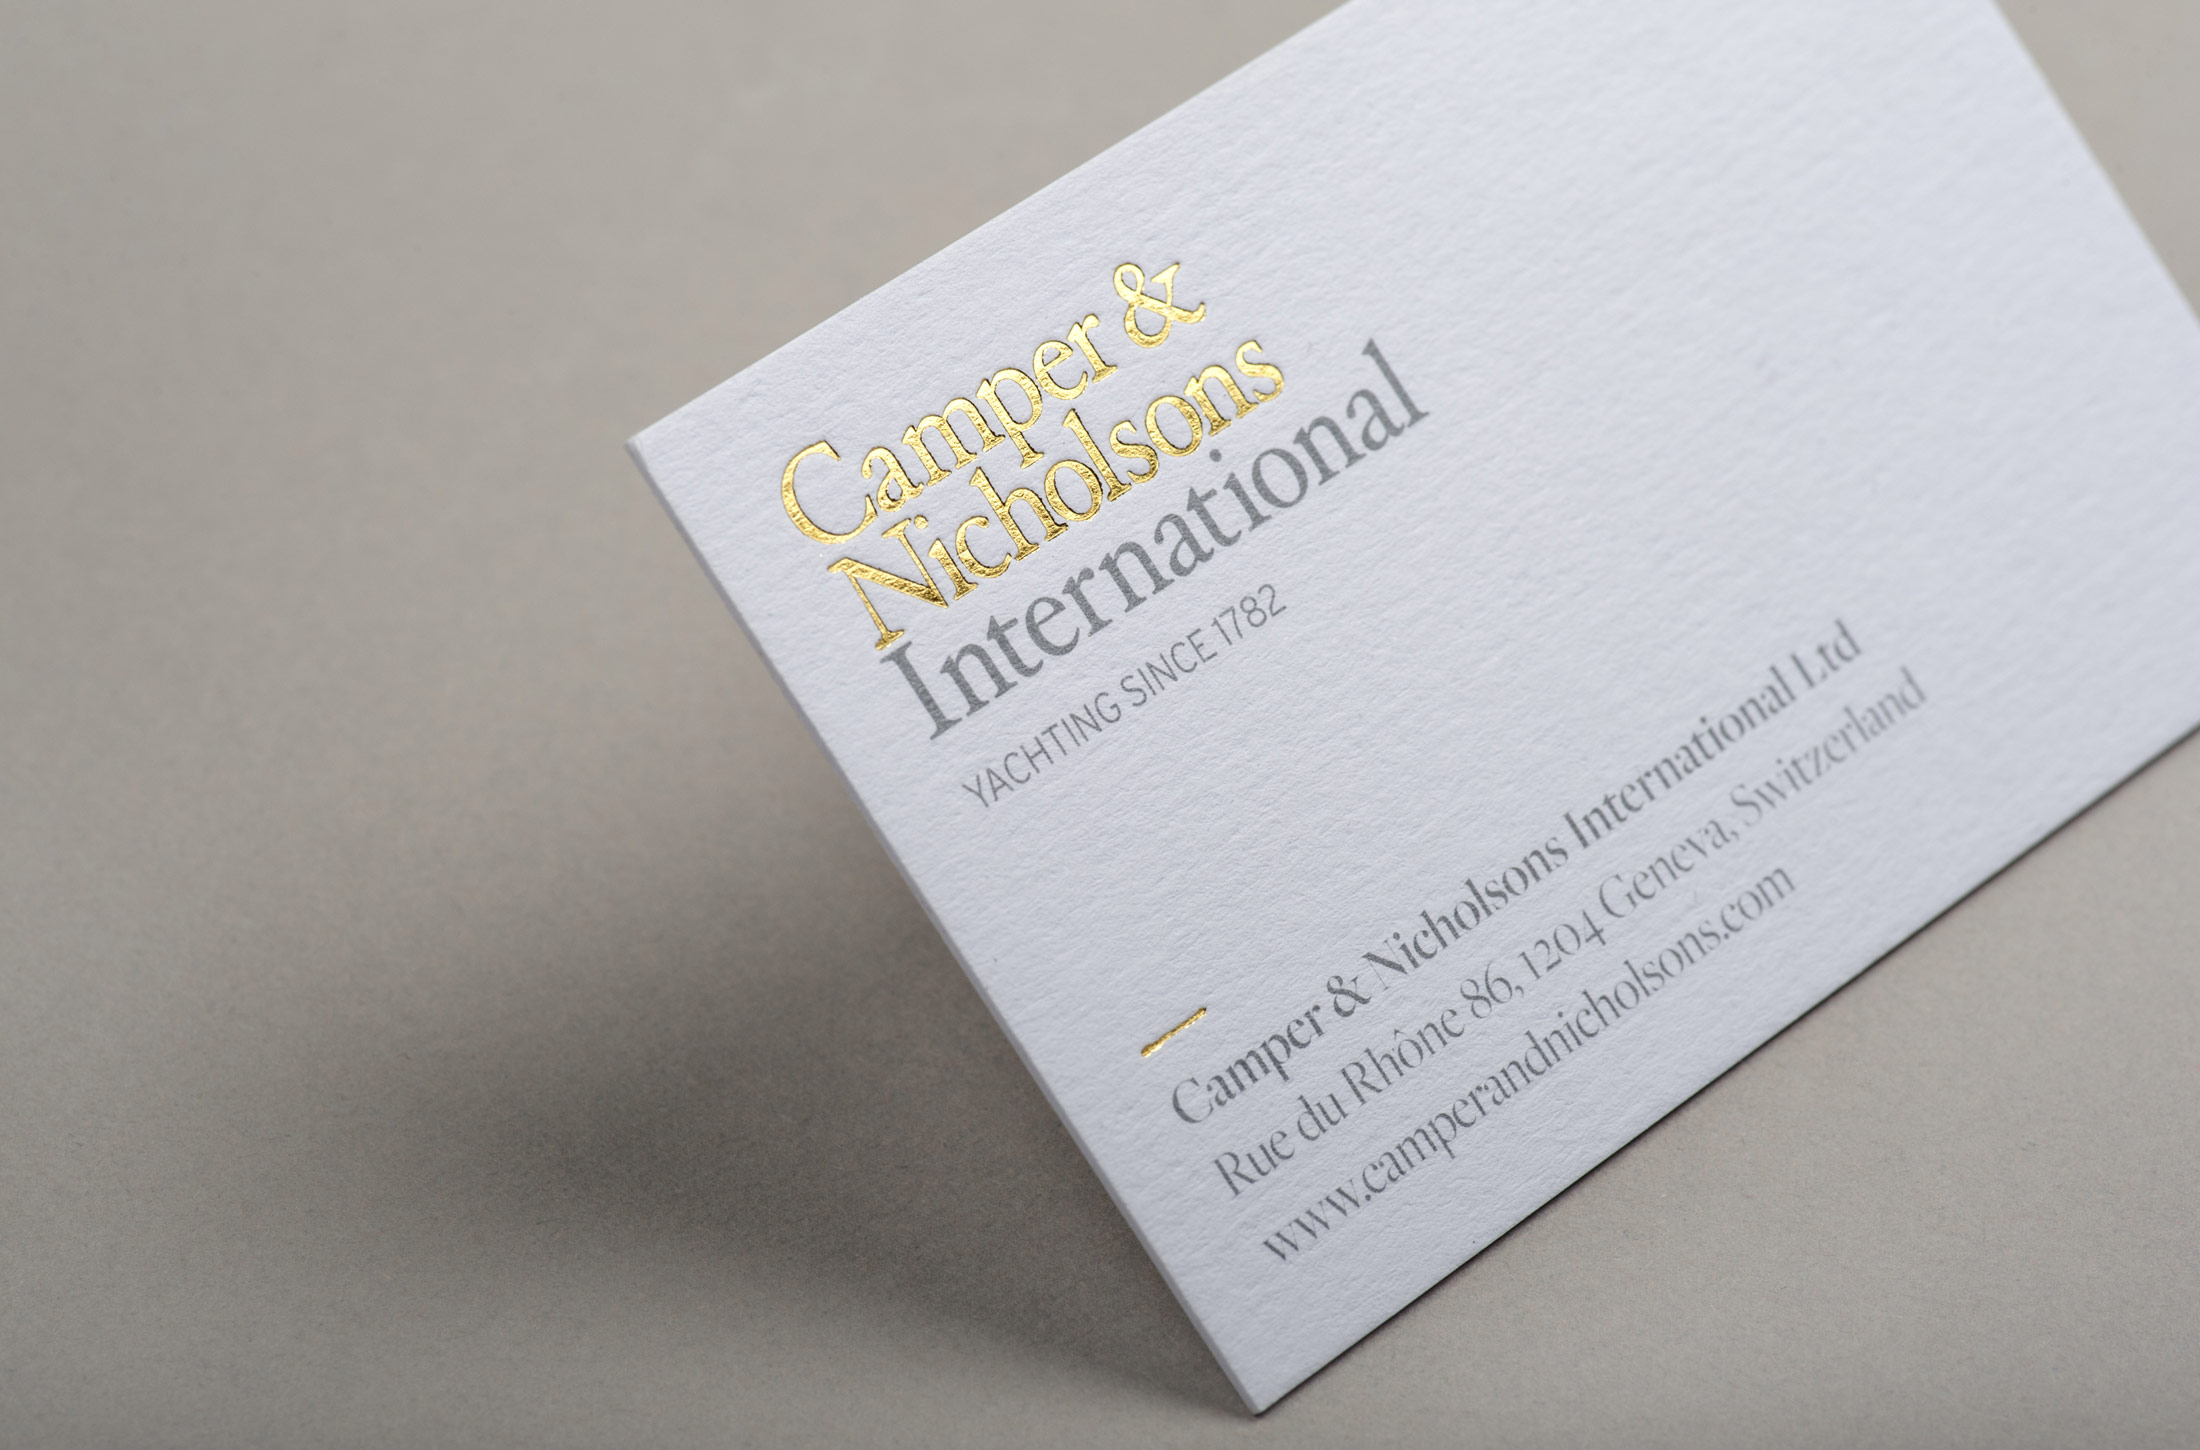 Camper & Nicholsons International business card